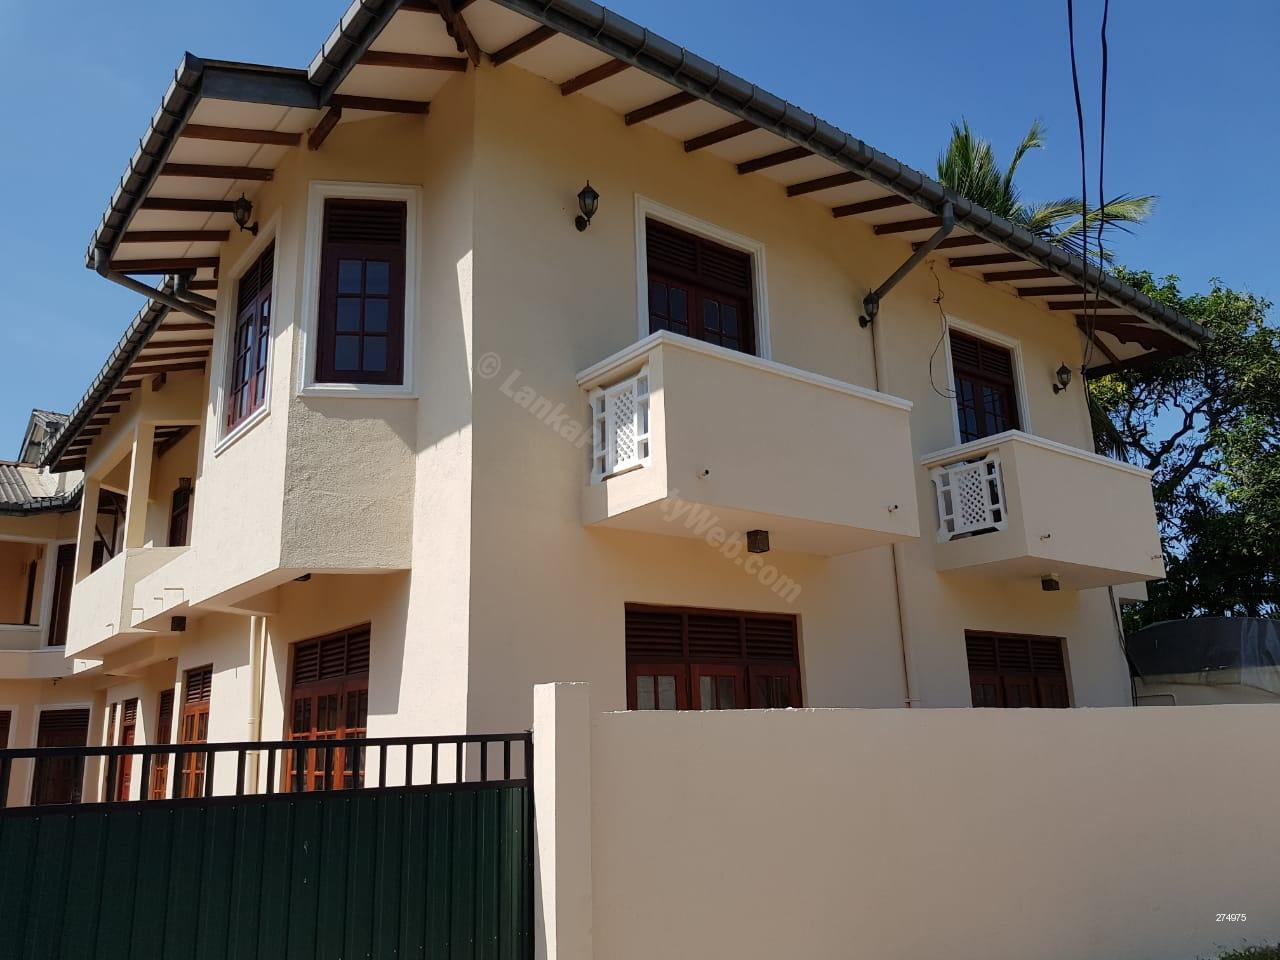 House for Sale in Moratuwa - PROPERTY in MORATUWA, SRI LANKA